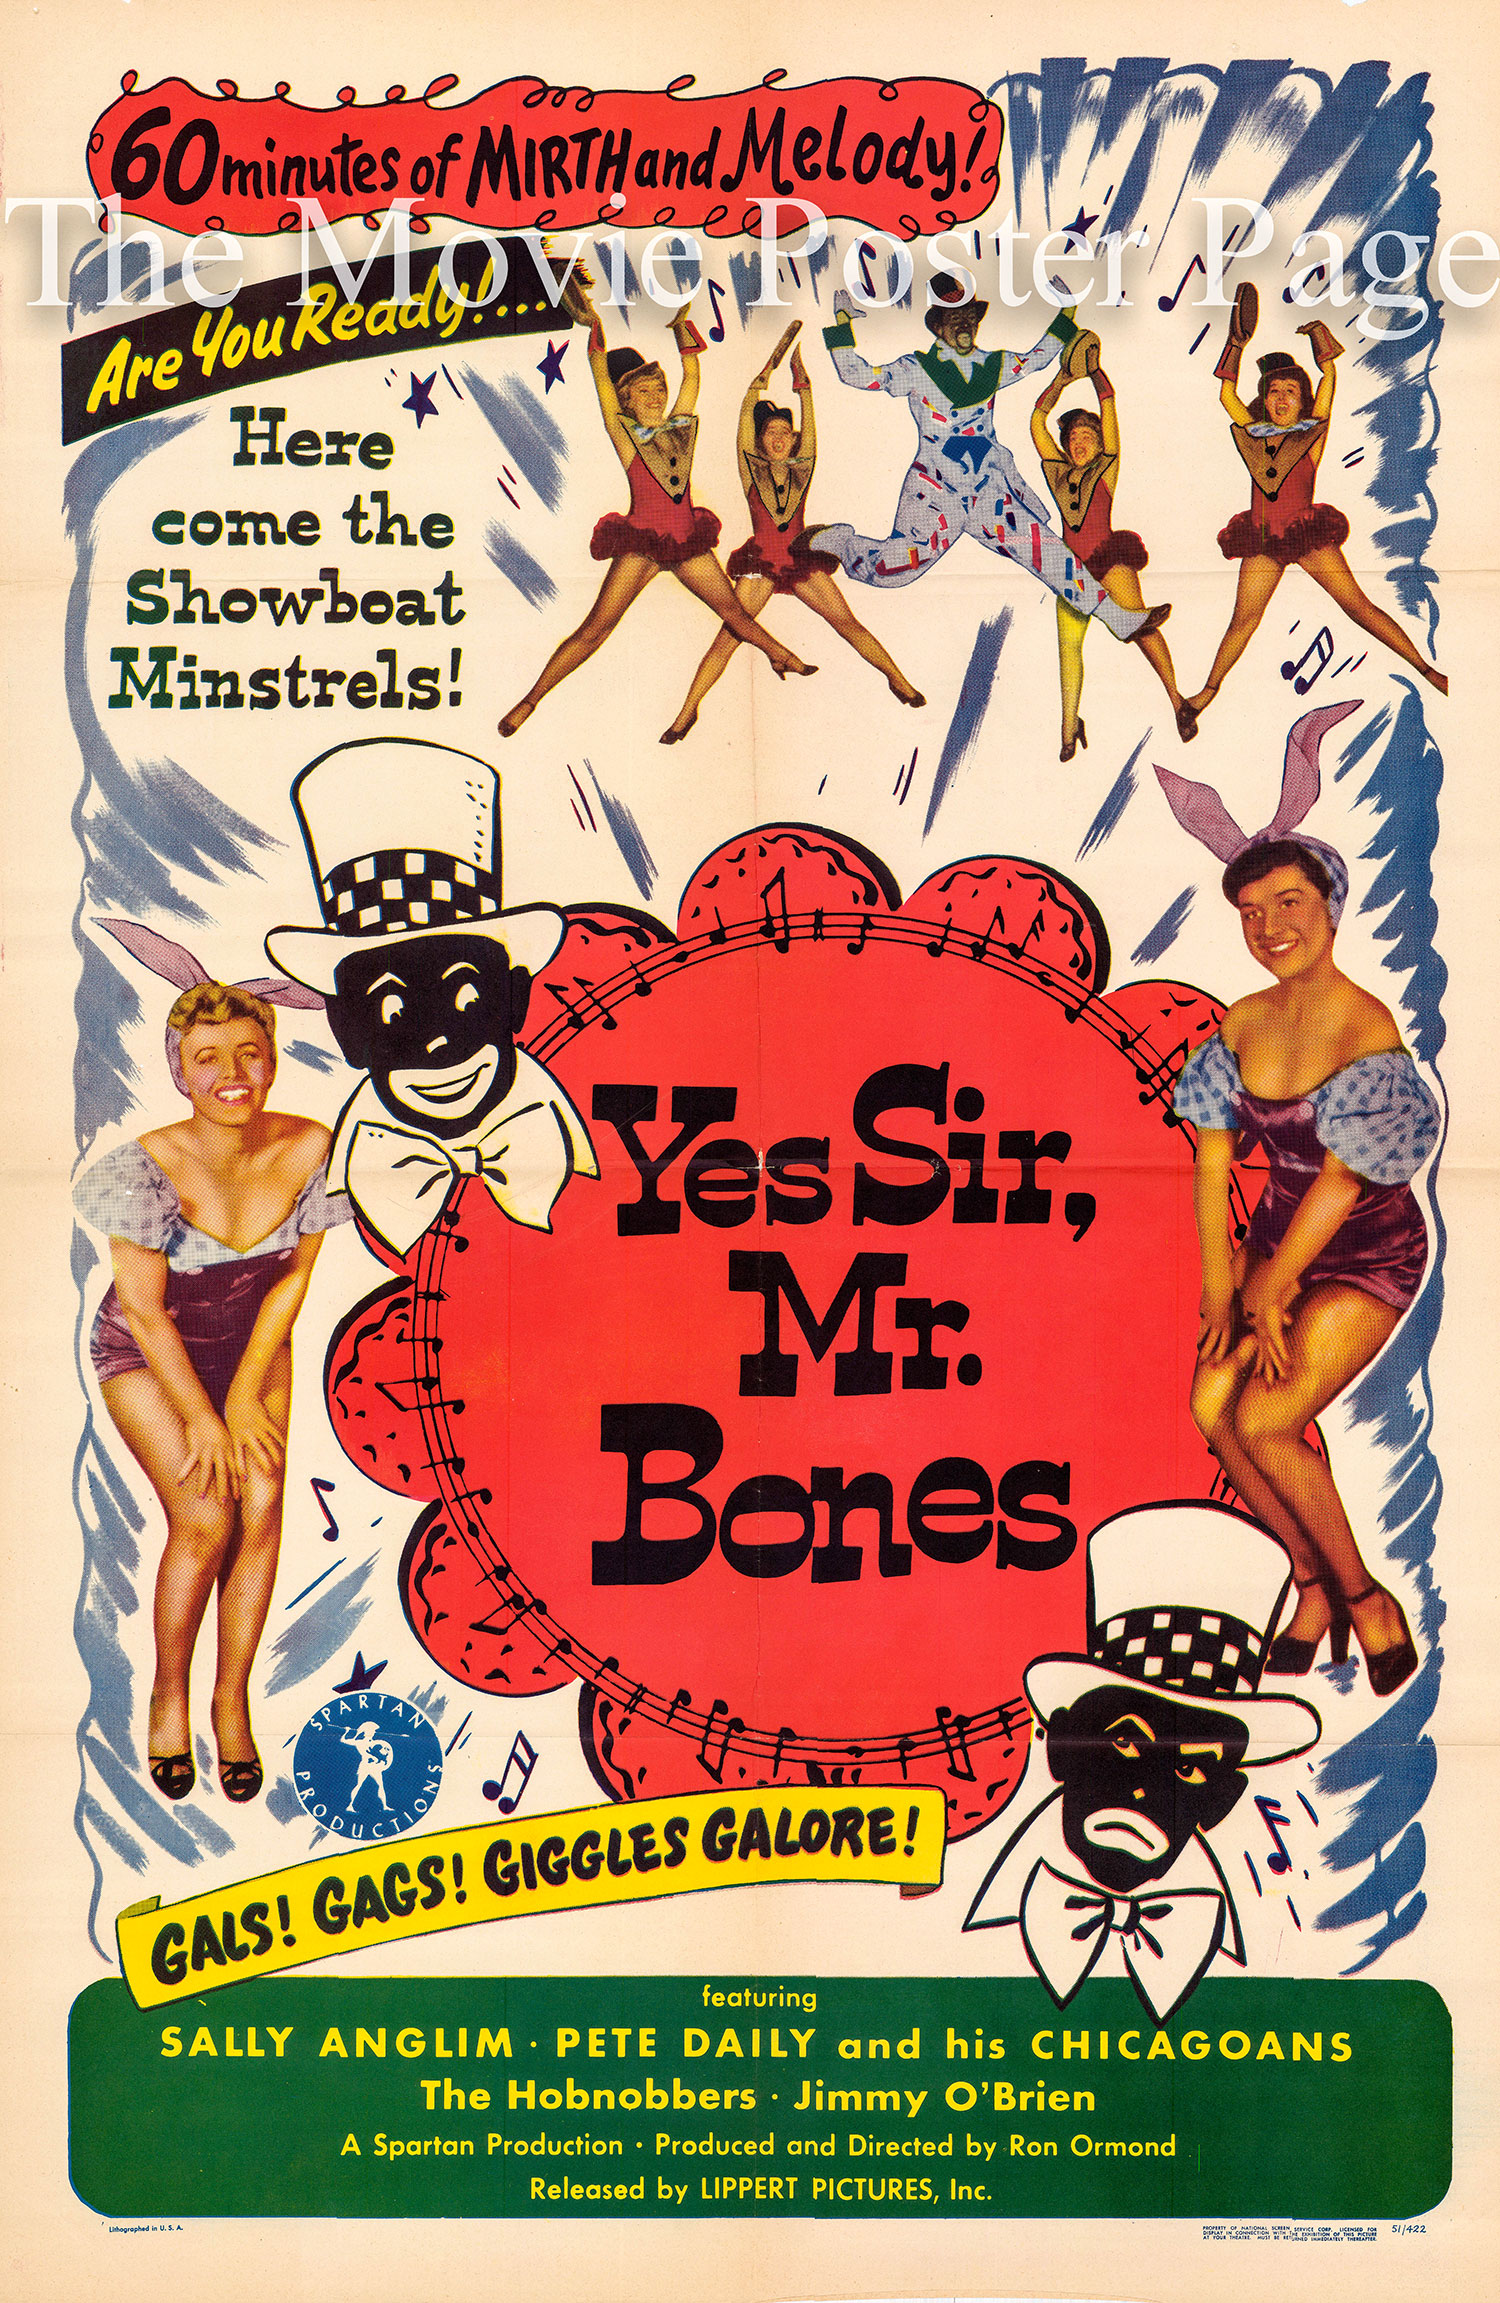 Pictured is a US one-sheet promotional poster for the 1951 Ron Ormond film Yes Sir, Mr. Bones starring Chick Watts and Scatman Crothers.